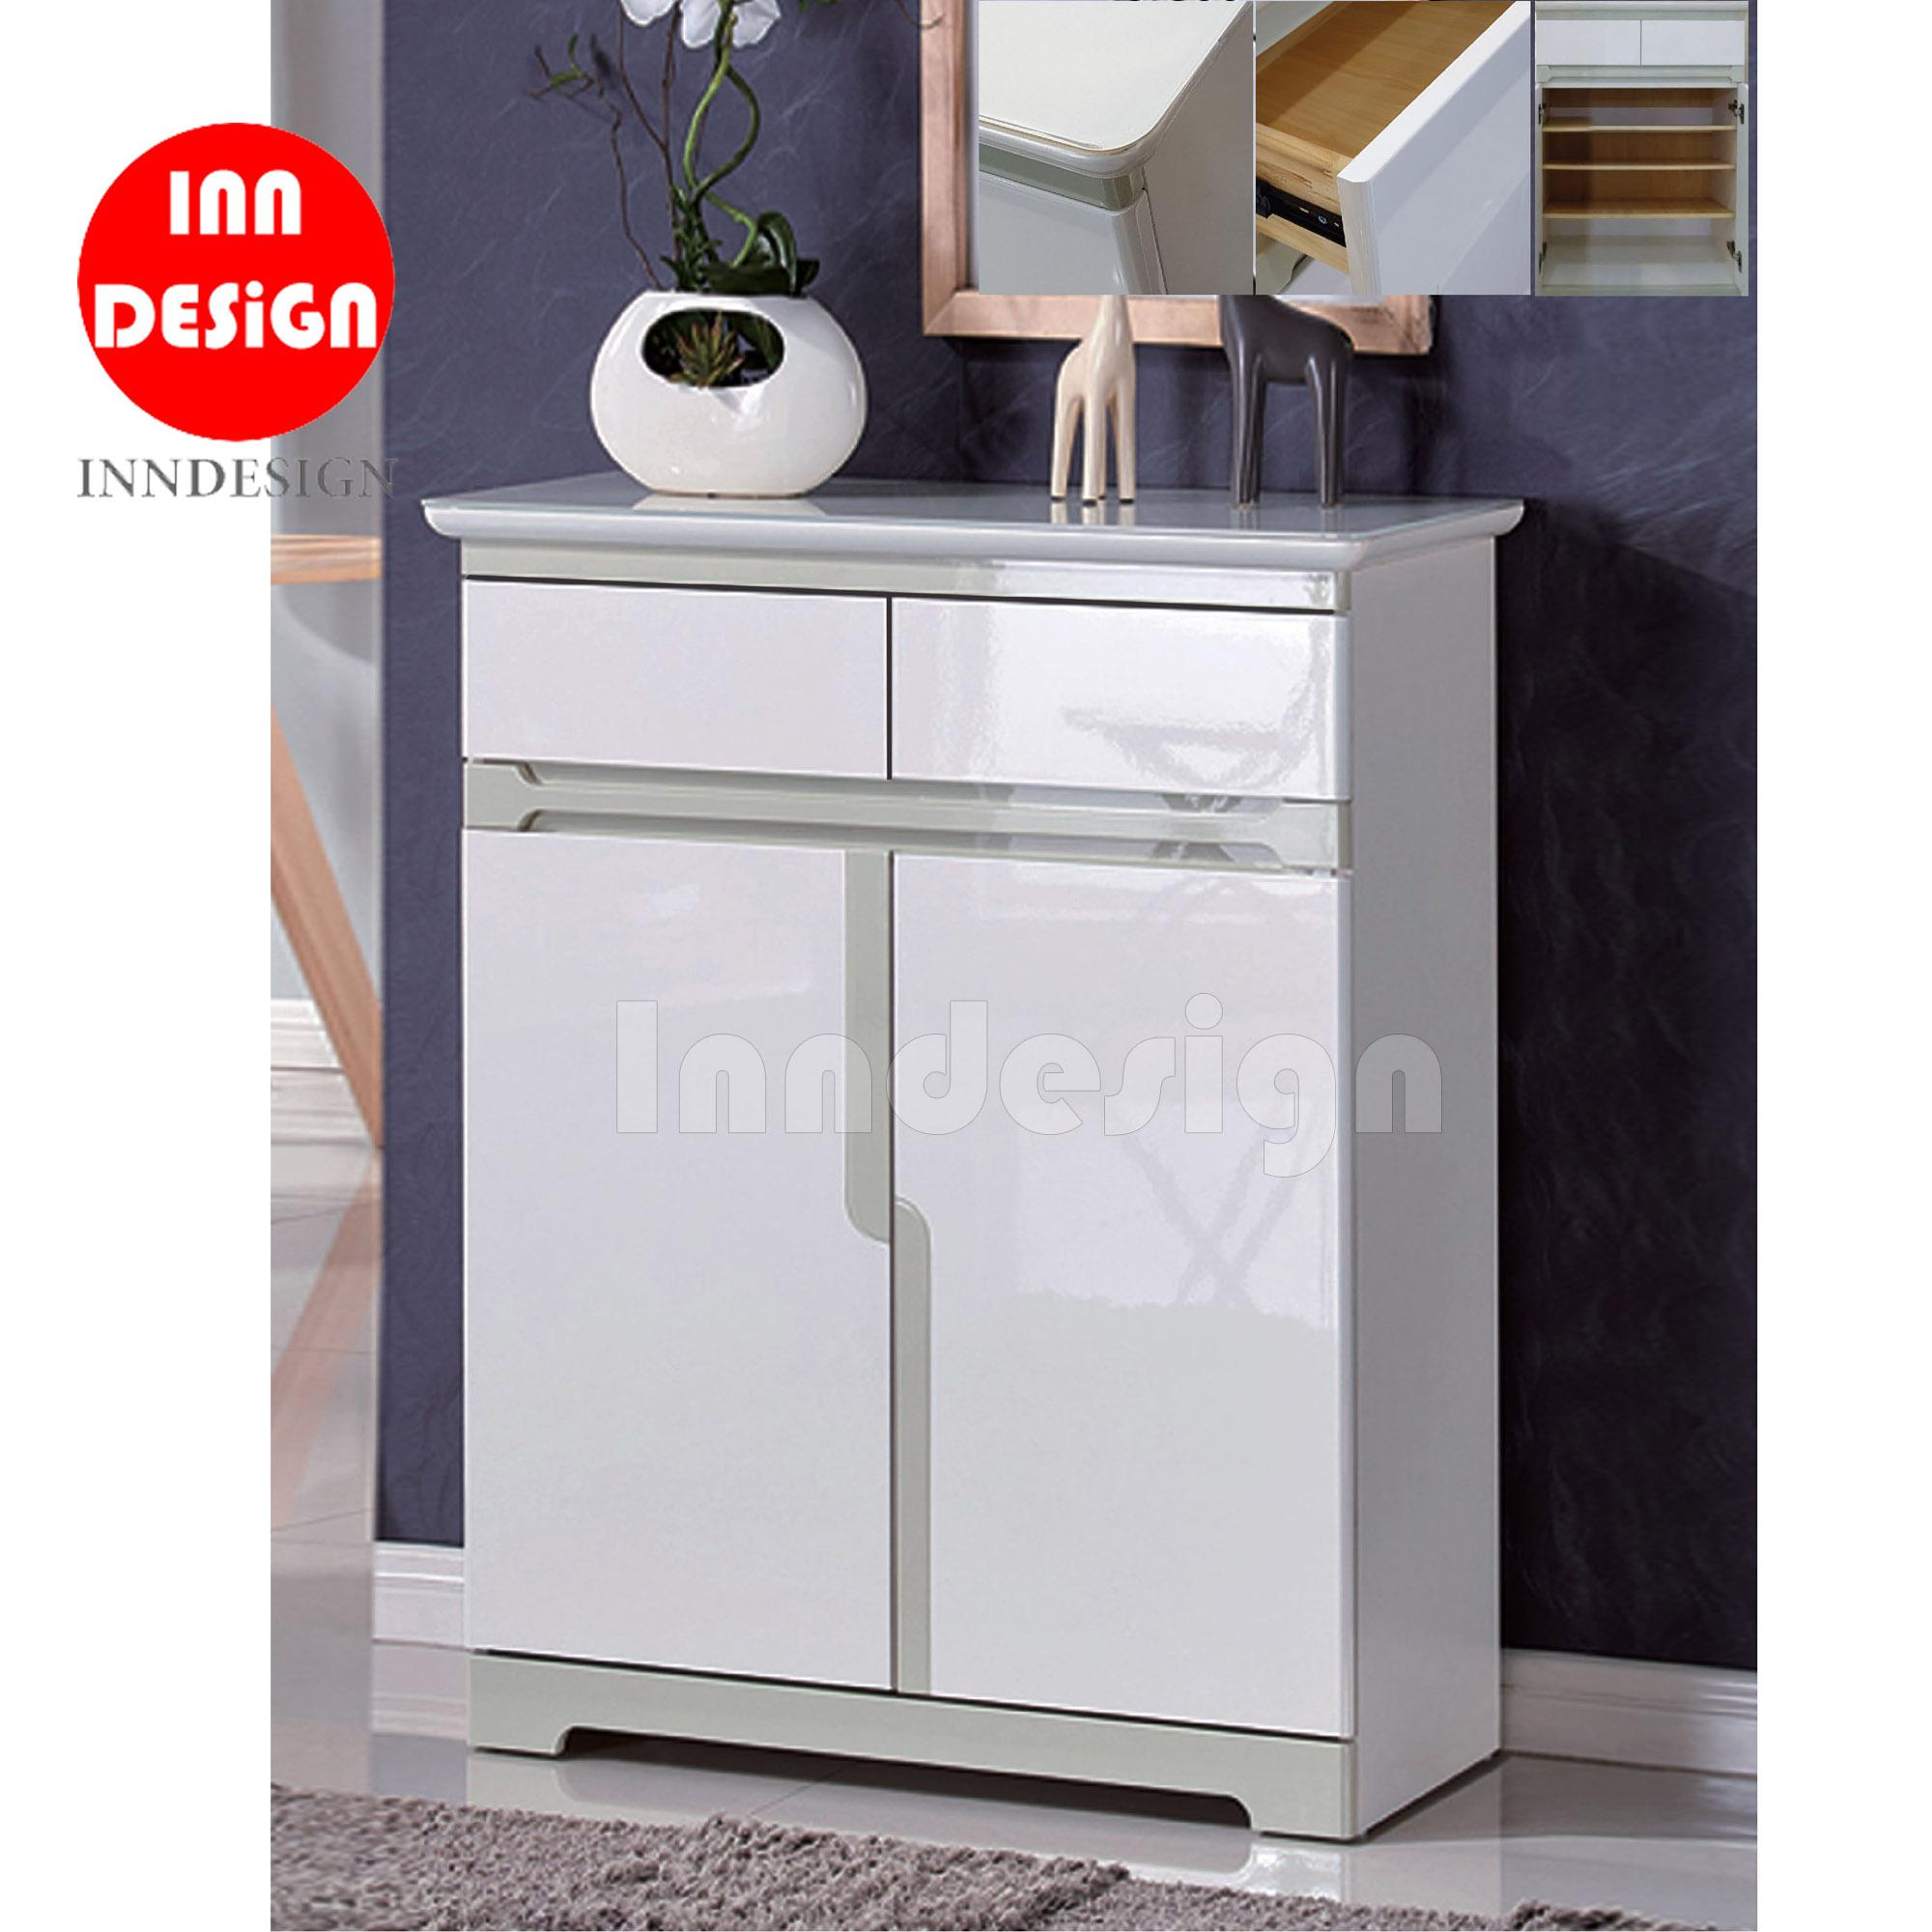 Ricky 2 Doors Shoe Cabinet with 2 Drawers and Glass Top